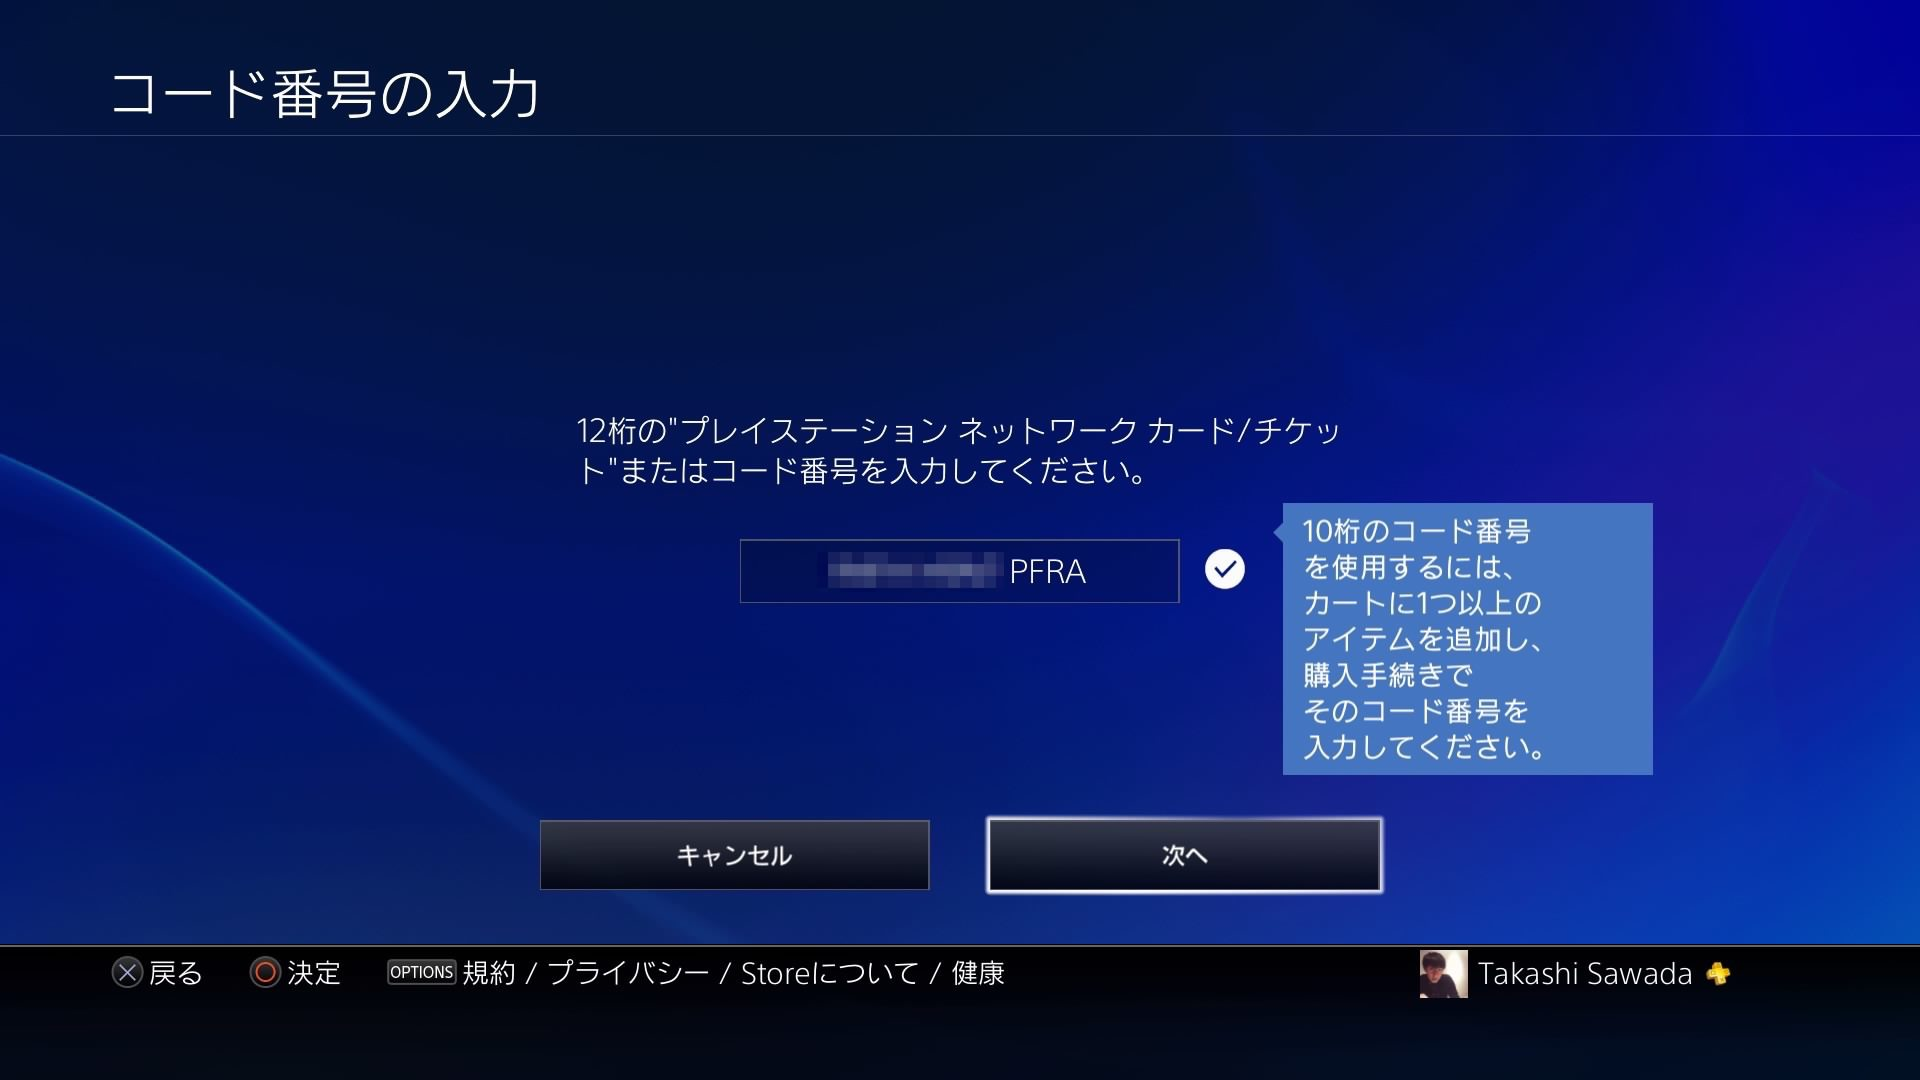 How to download product code contents for playstation 4 4